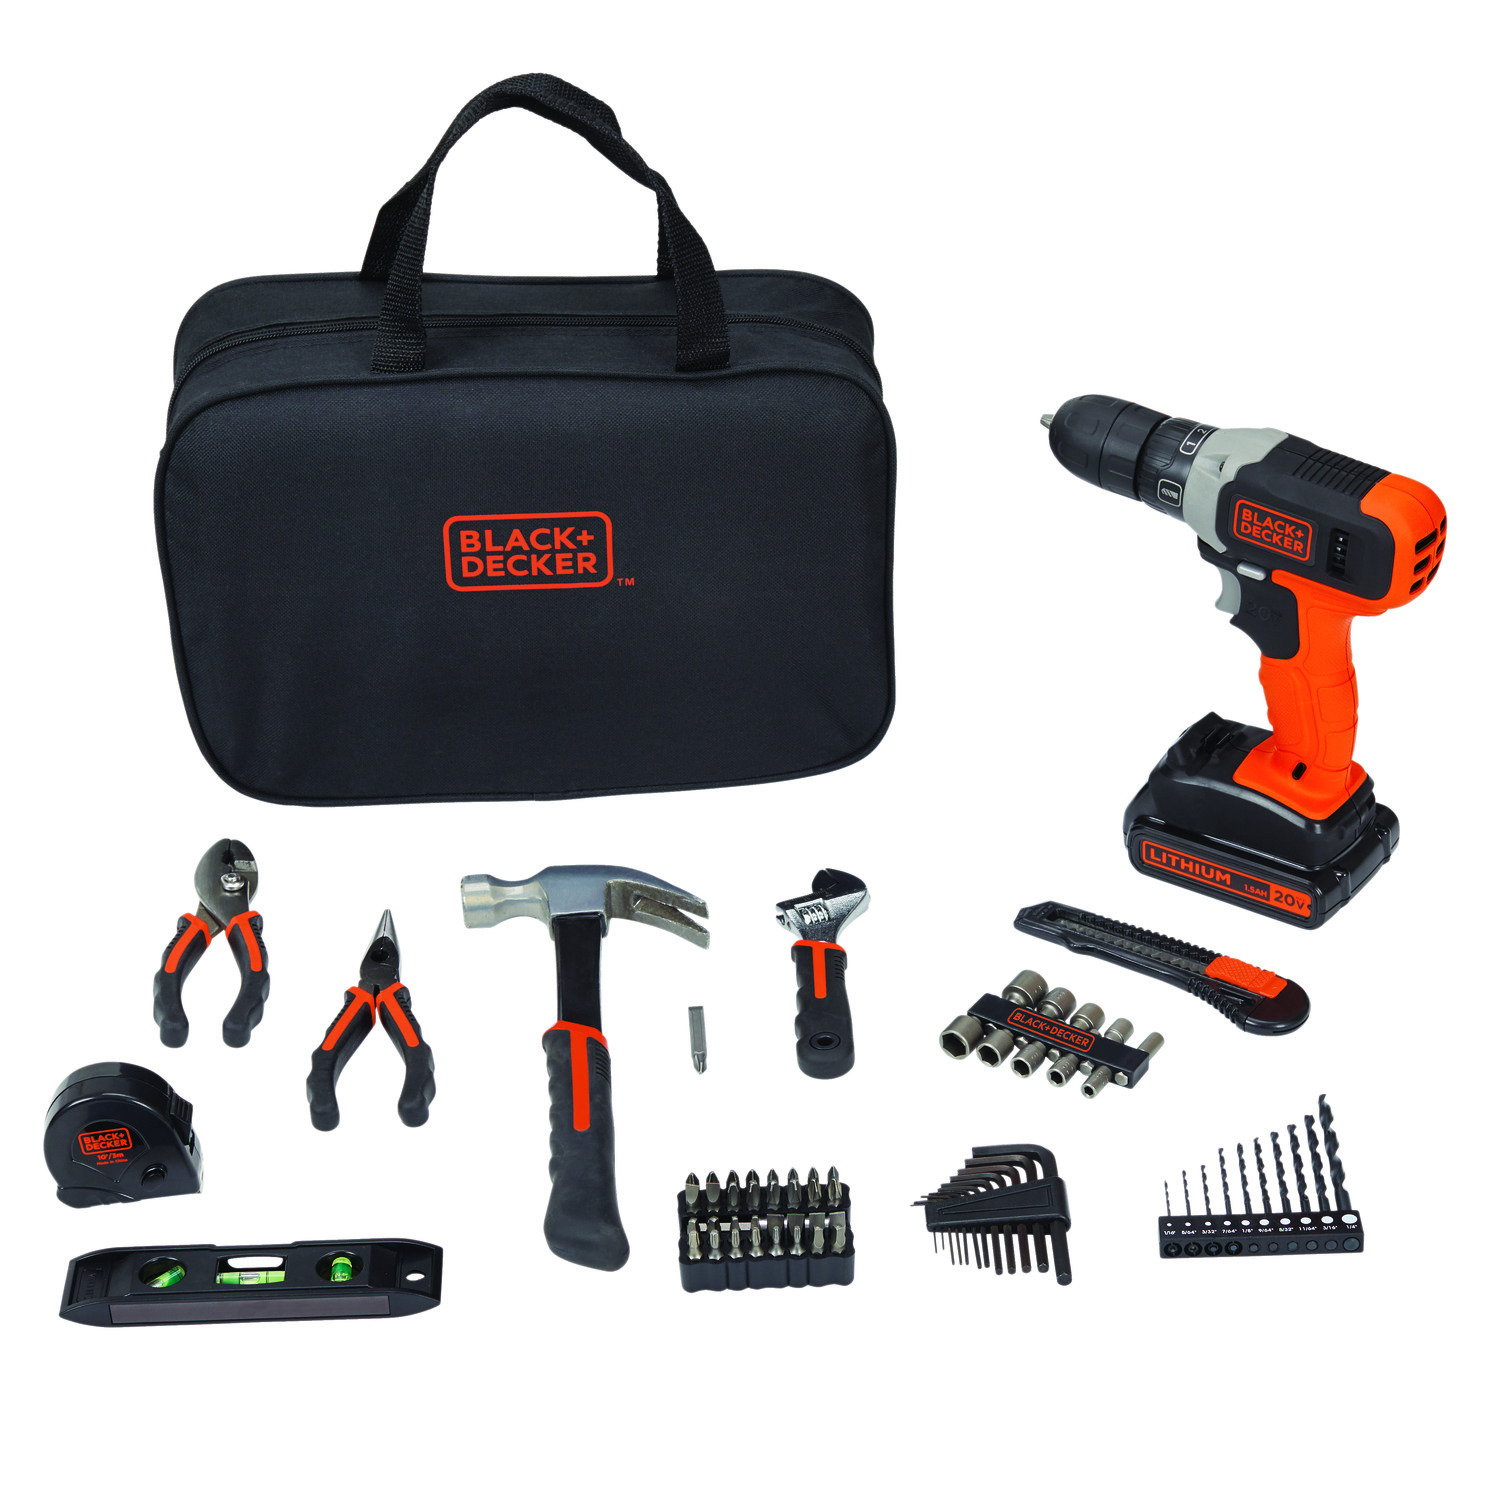 Black + Decker 20-volt Max 75-Piece Project Kit